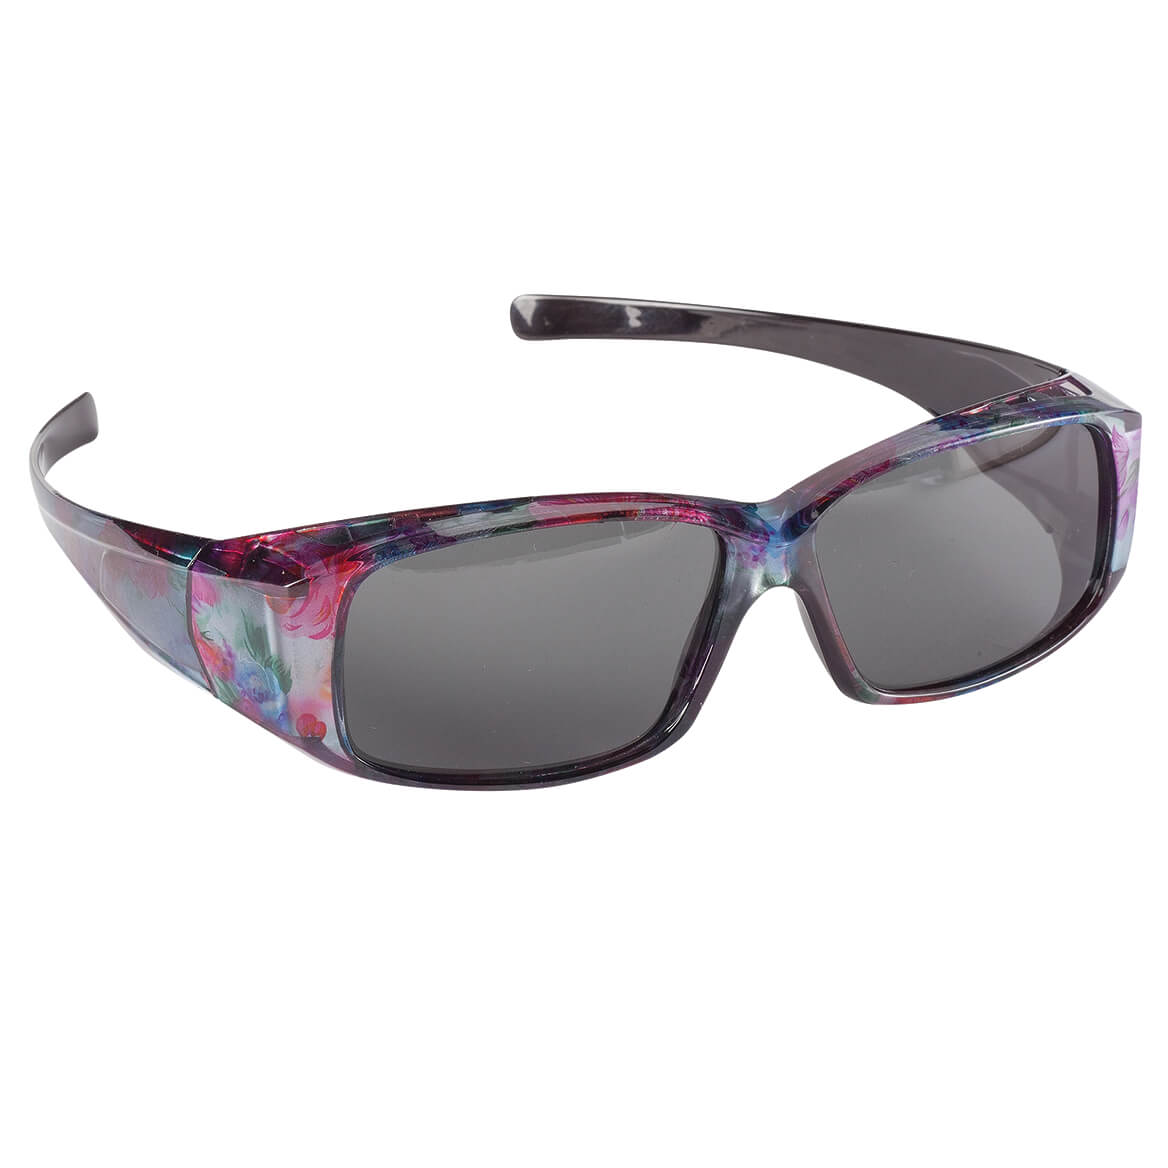 Floral Fit Over Sunglasses-364206